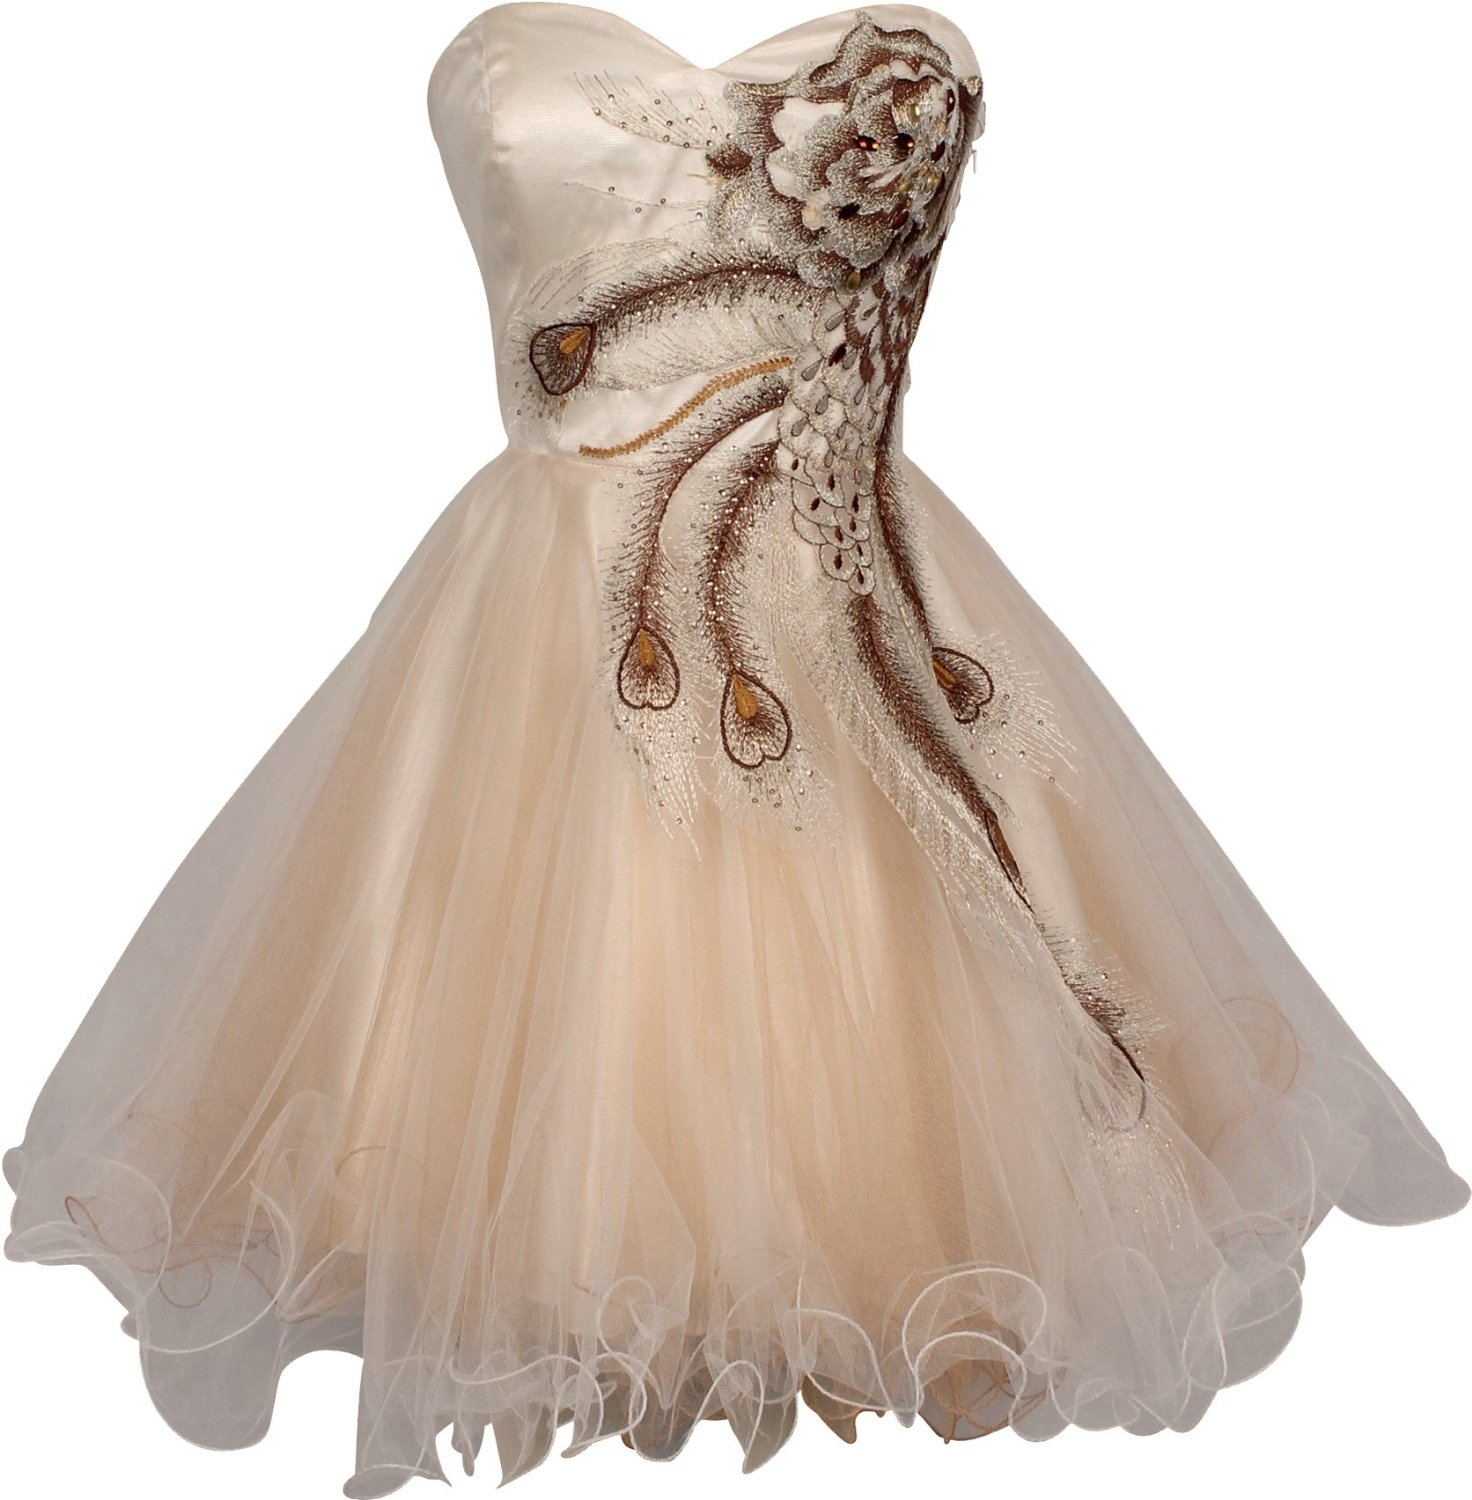 plus size quinceanera attire reasonably-priced